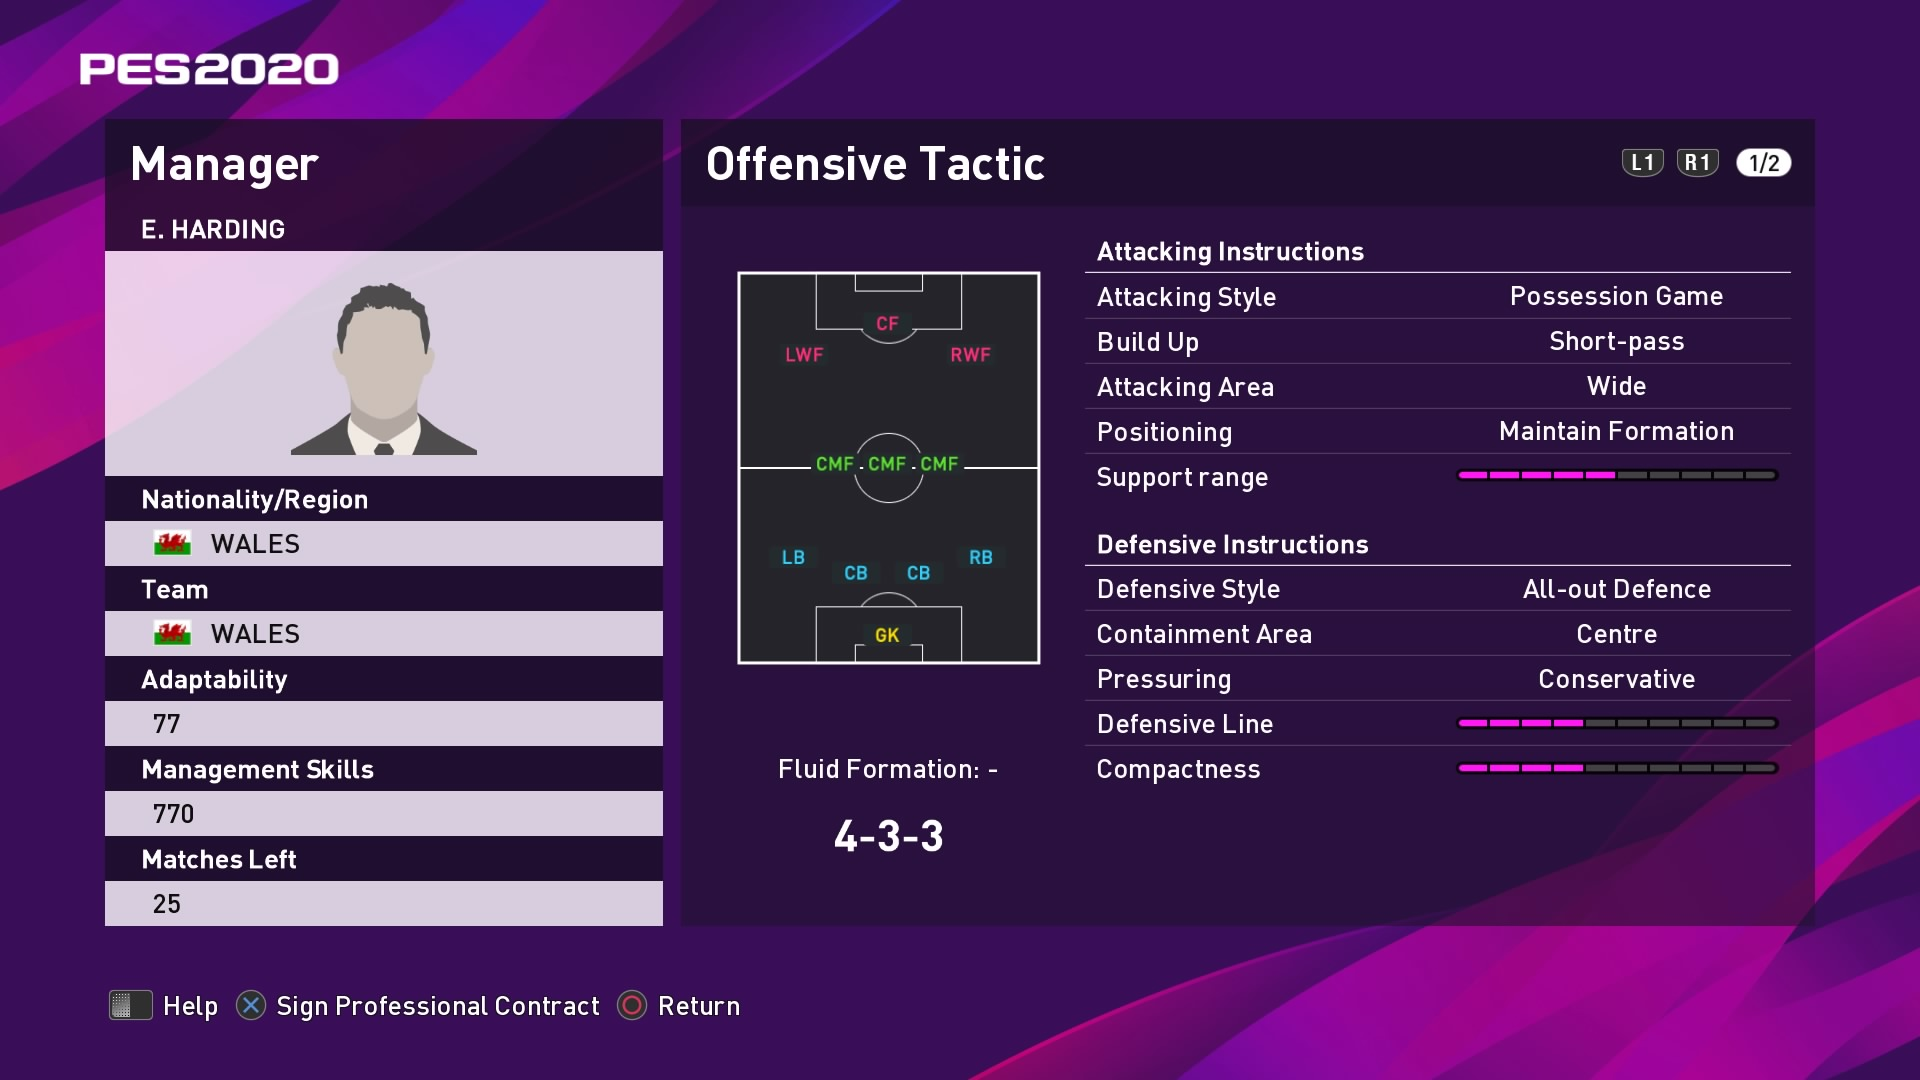 E. Harding (Ryan Giggs) Offensive Tactic in PES 2020 myClub